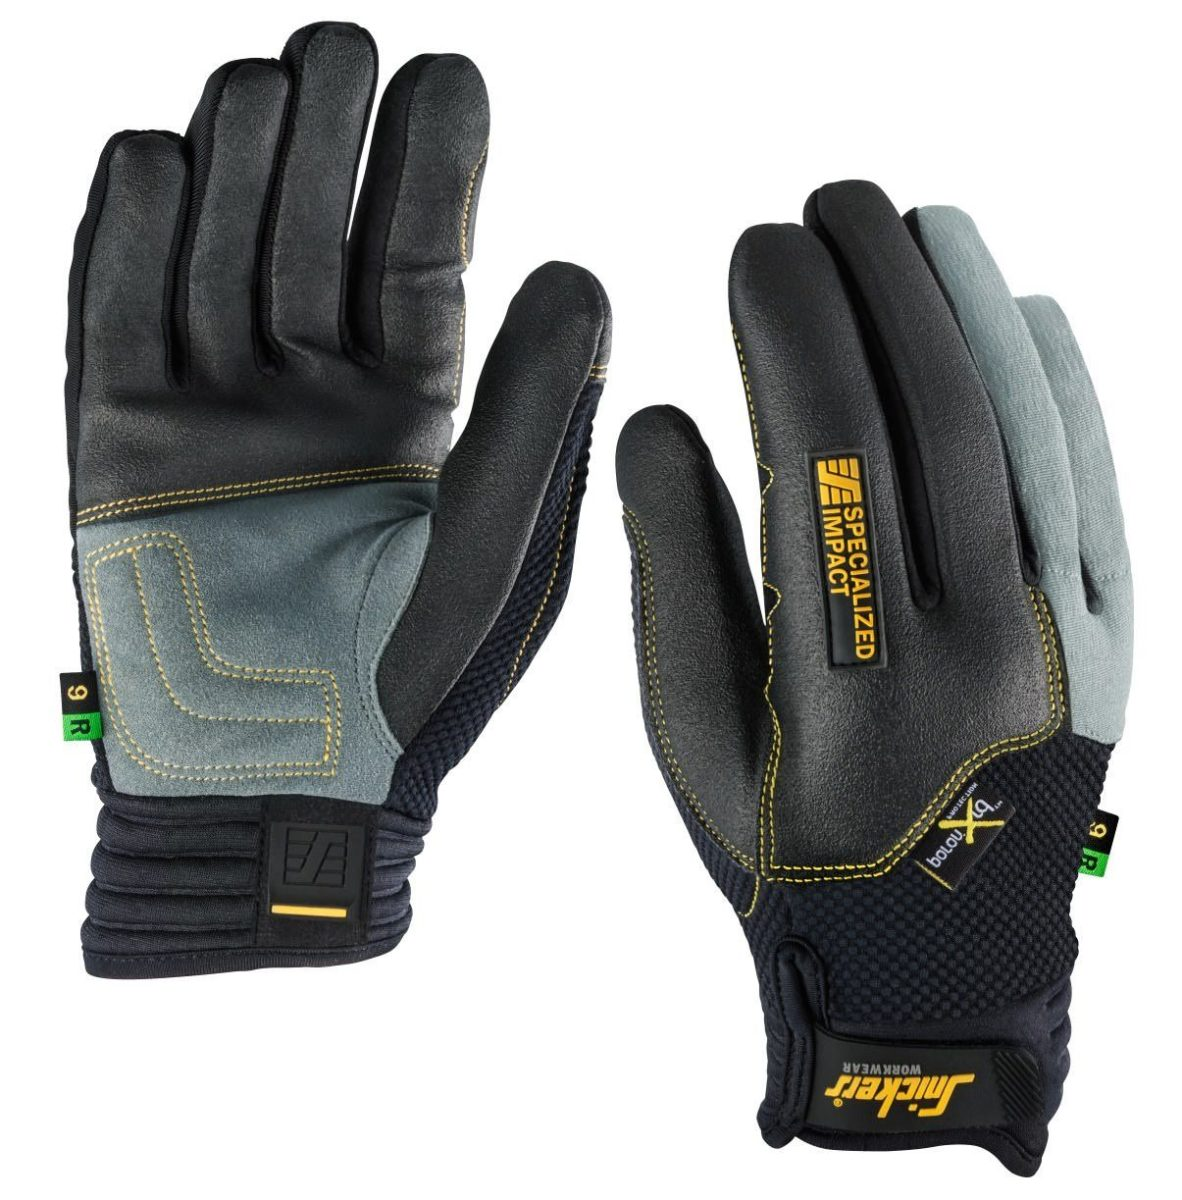 Snickers 9596 Specialised Impact Glove, Right (Single)